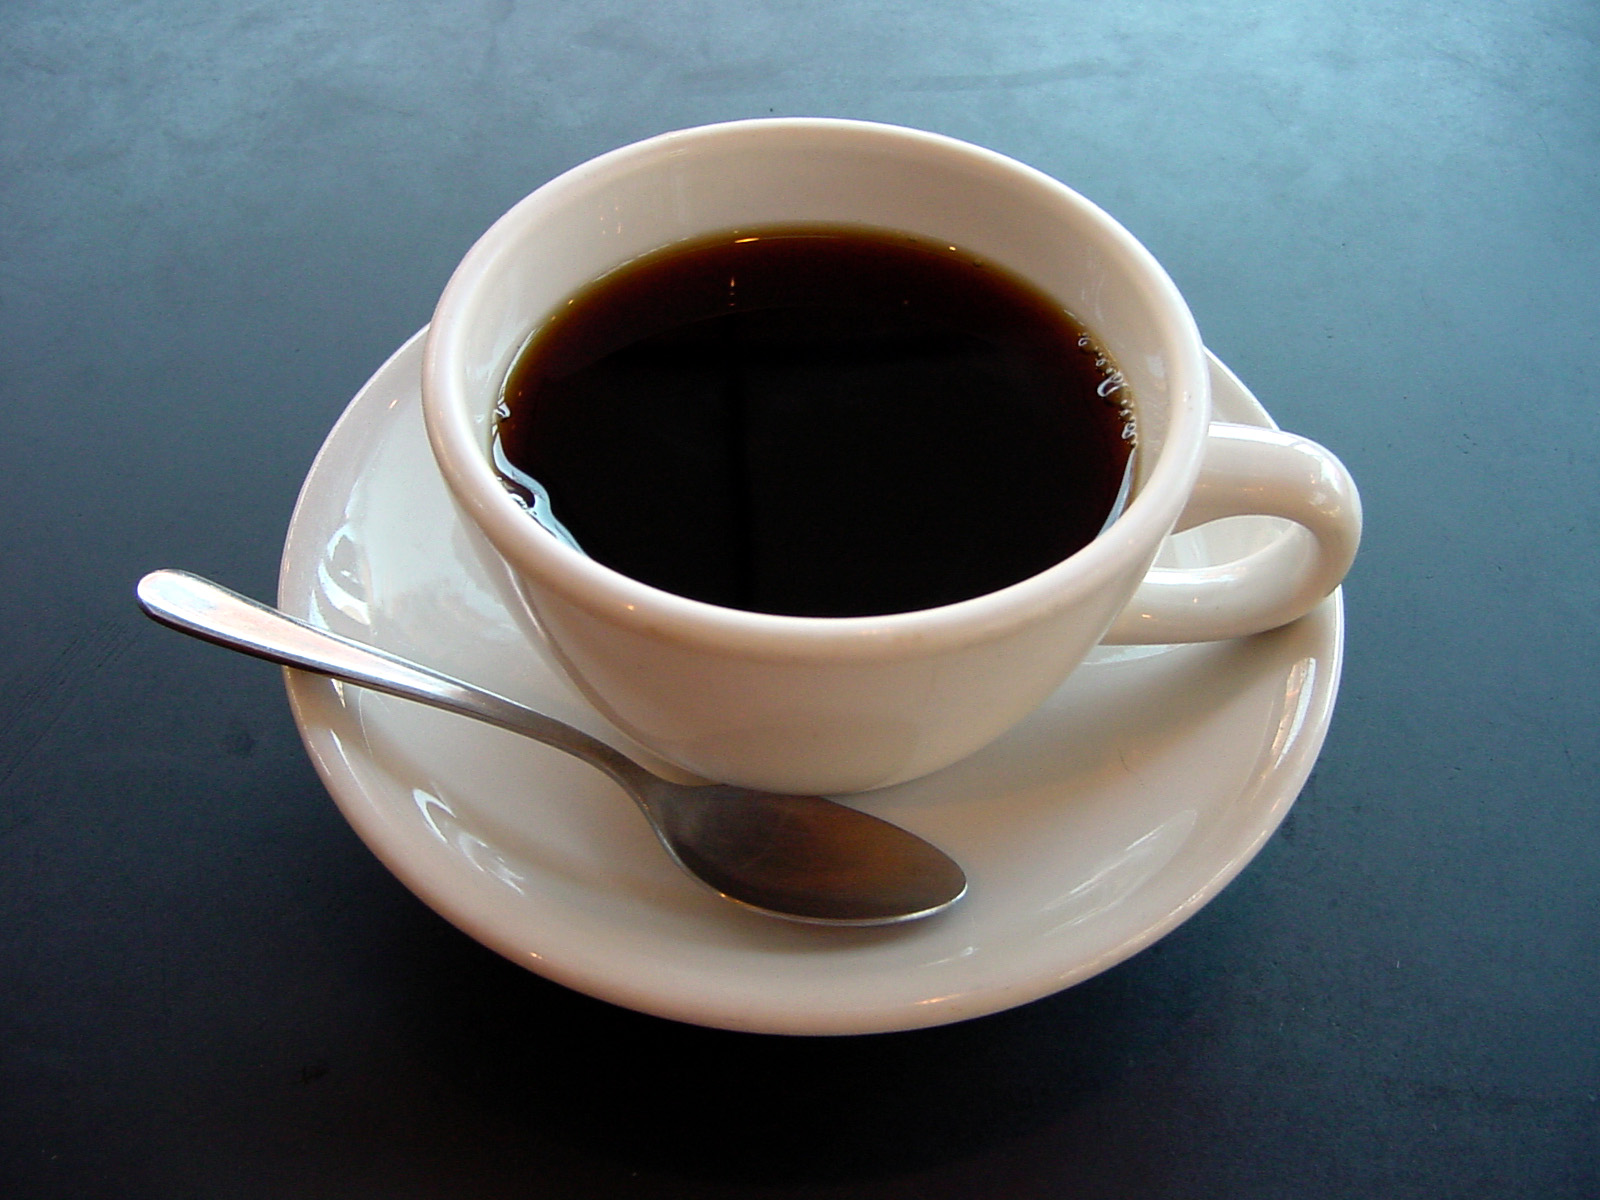 a_small_cup_of_coffee_251897